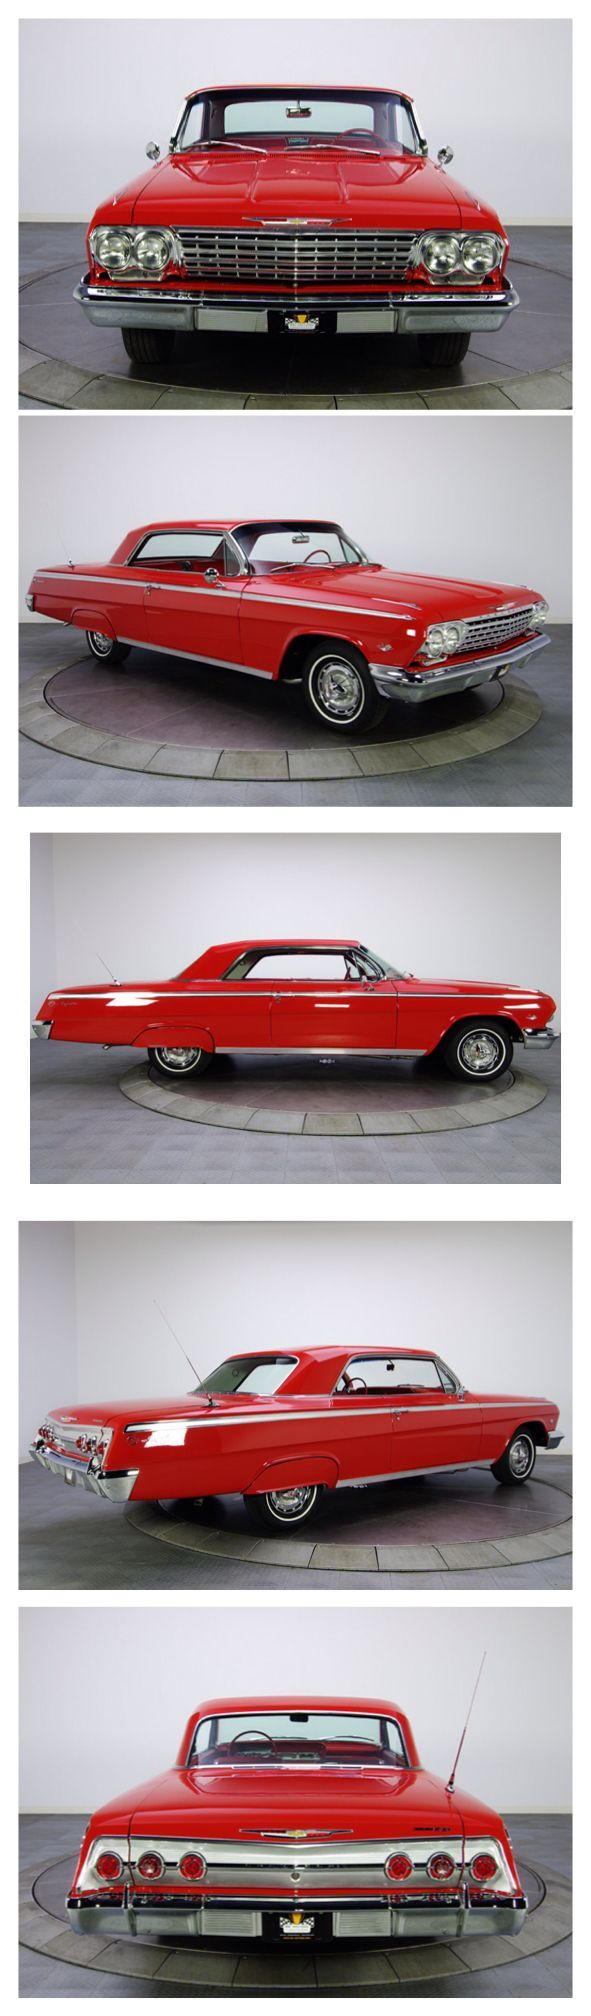 1964 Chevy Impala SS Maintenance/restoration of old/vintage vehicles: the material for new cogs/casters/gears/pads could be cast polyamide which I (Cast polyamide) can produce. My contact: tatjana.alic@windowslive.com